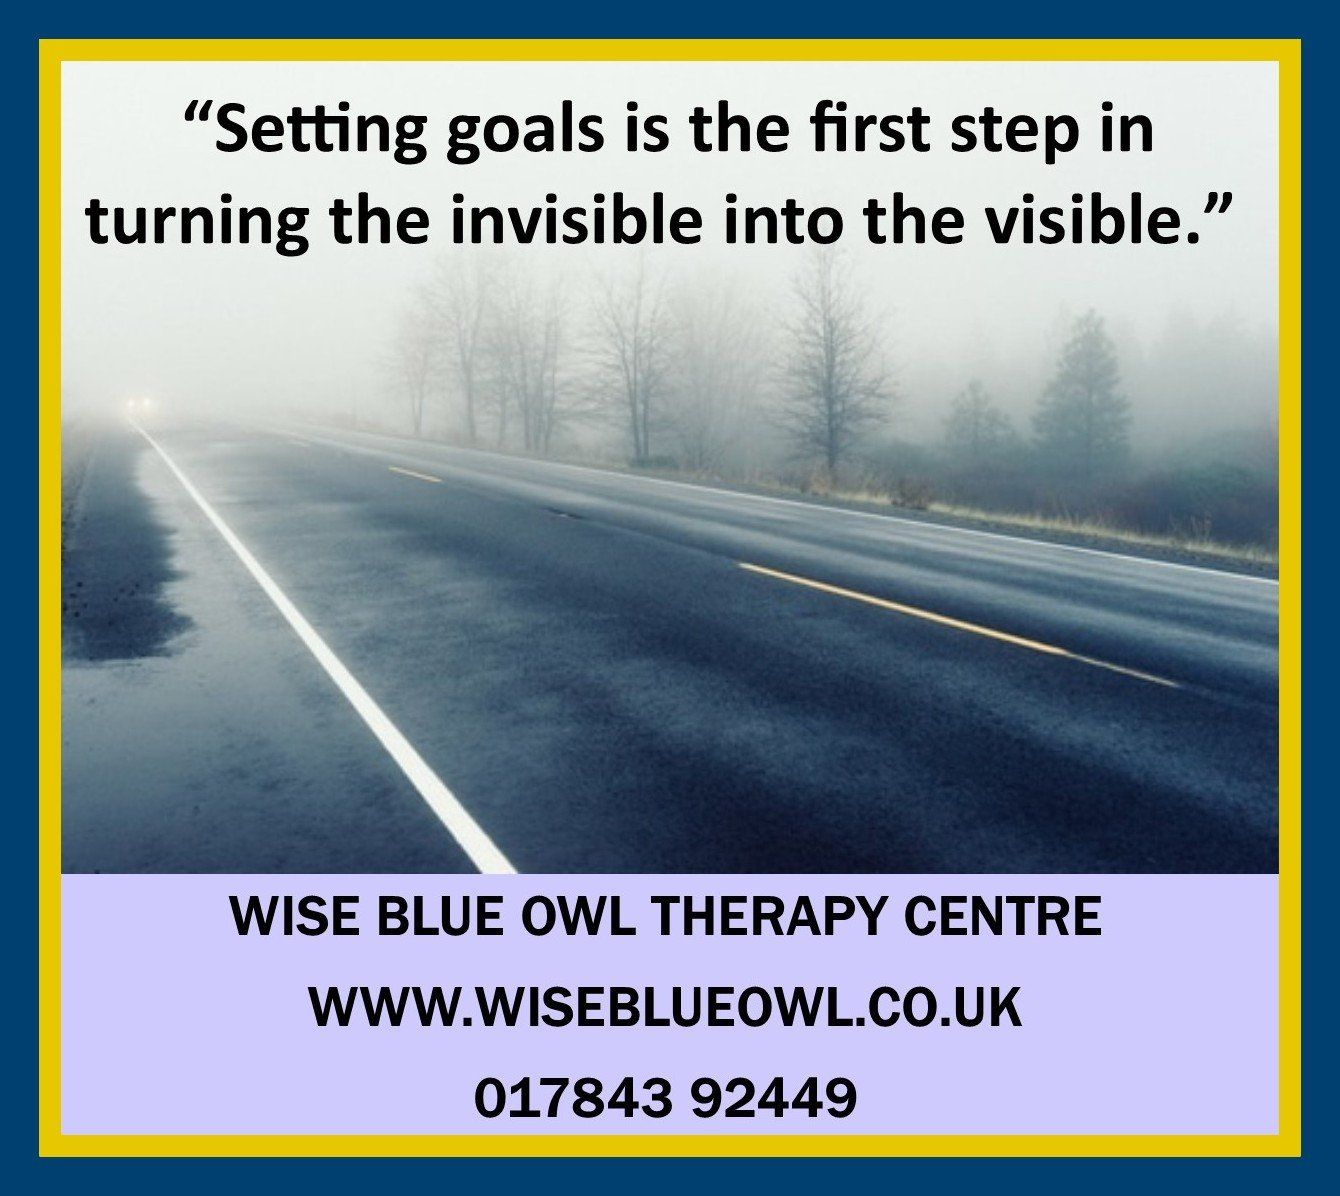 http://www.wiseblueowl.co.uk/setting-goals-is-your-first-step